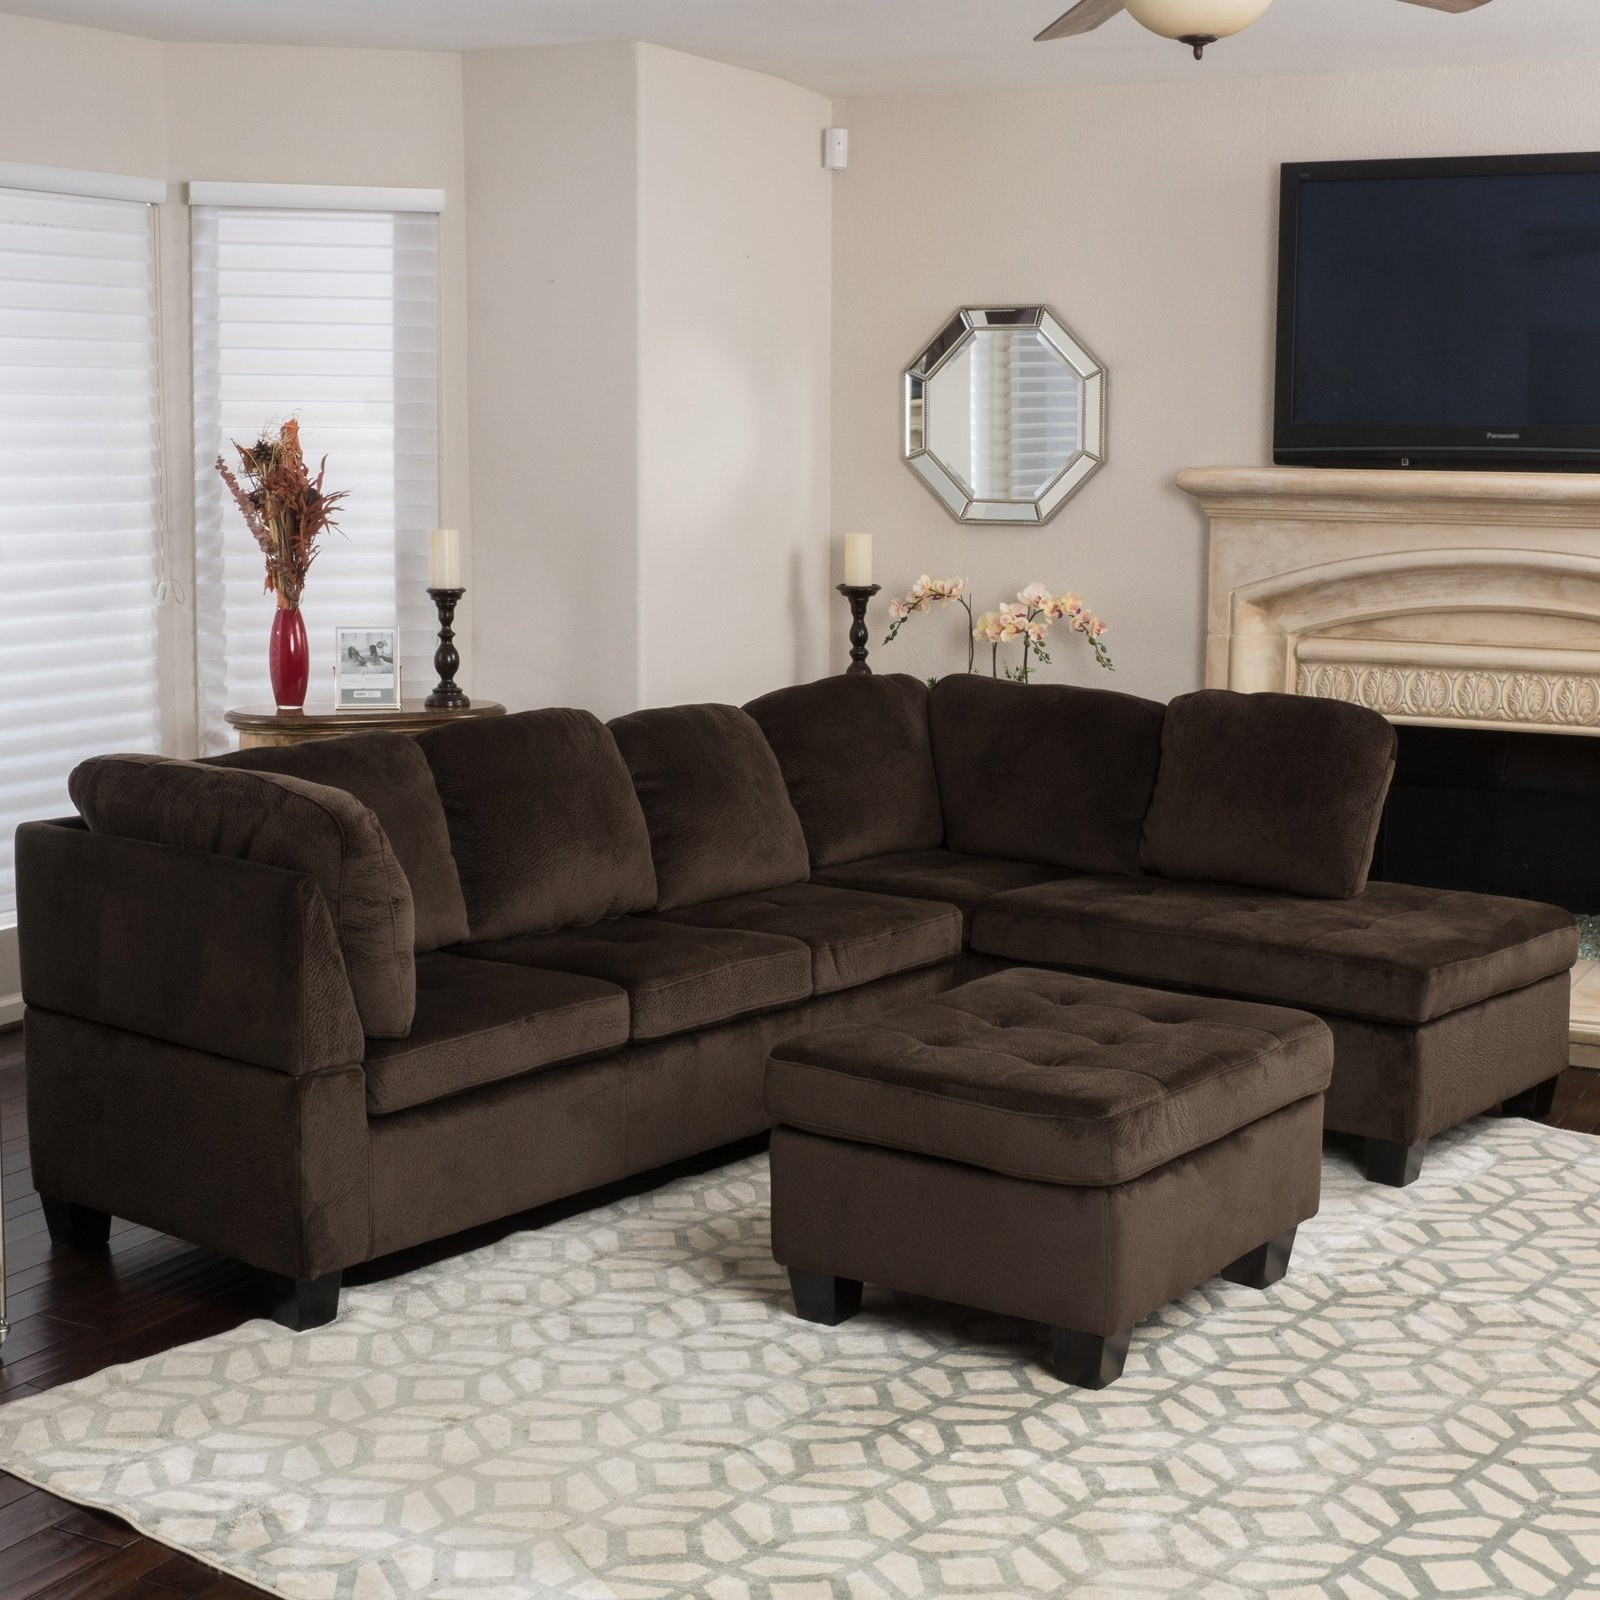 3 Piece Sectional Sofa Dimensions | Baci Living Room pertaining to Malbry Point 3 Piece Sectionals With Raf Chaise